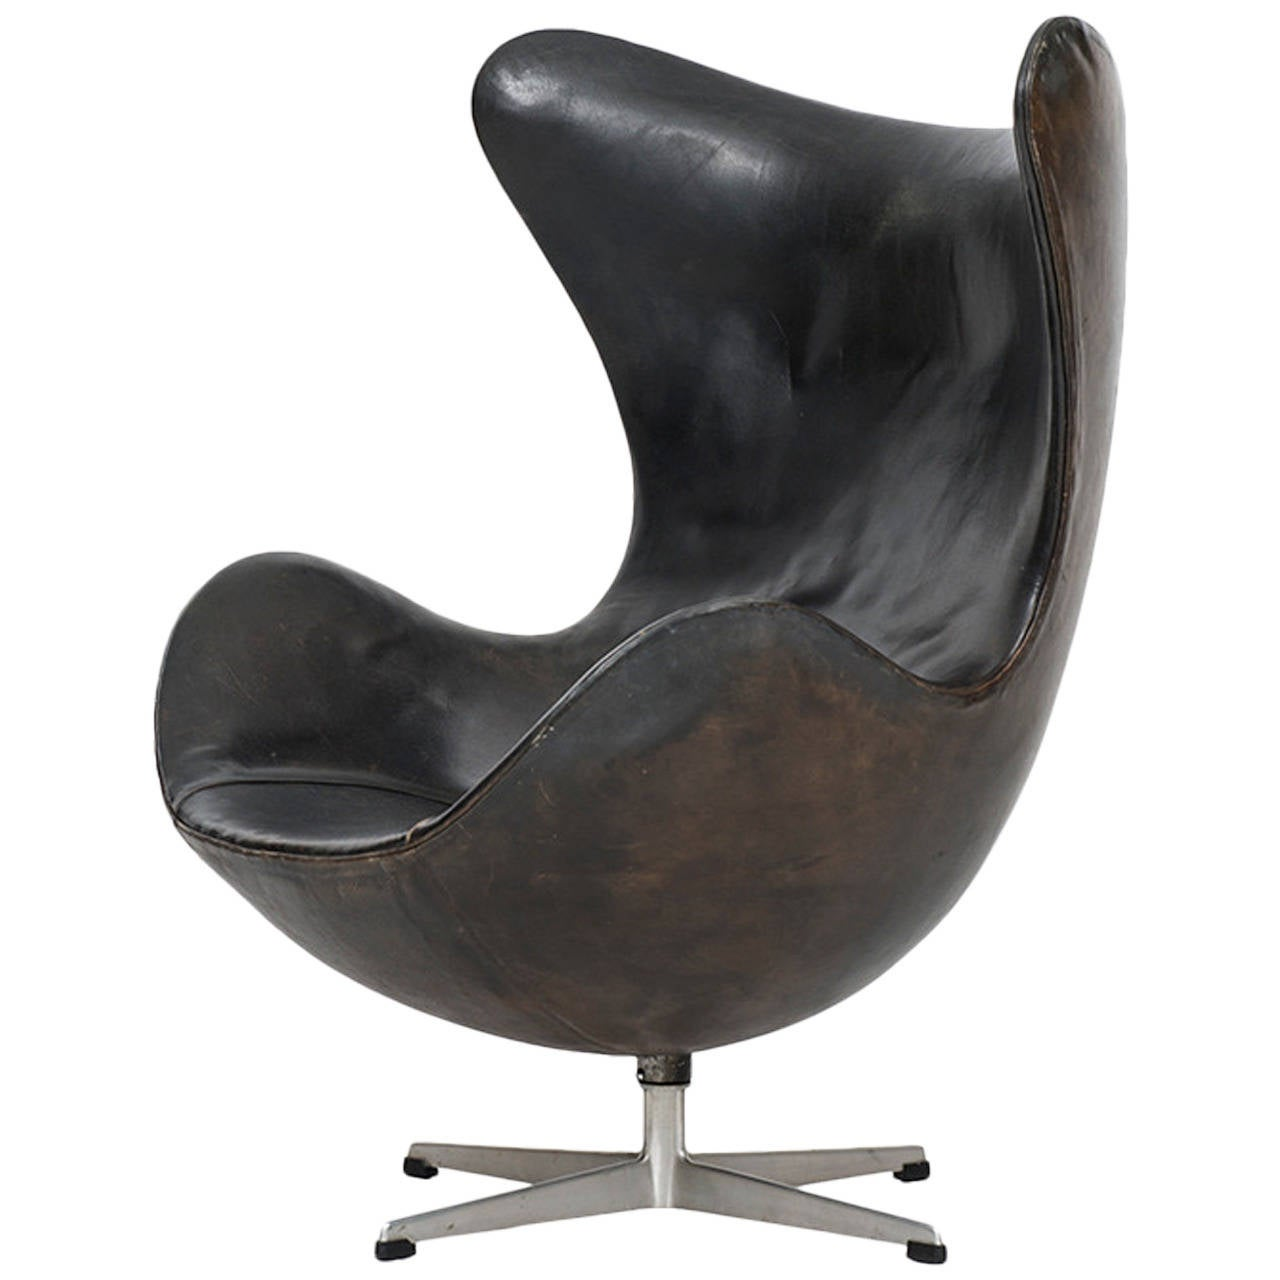 arne jacobsen early egg chair in original black leather by fritz hansen at 1stdibs. Black Bedroom Furniture Sets. Home Design Ideas